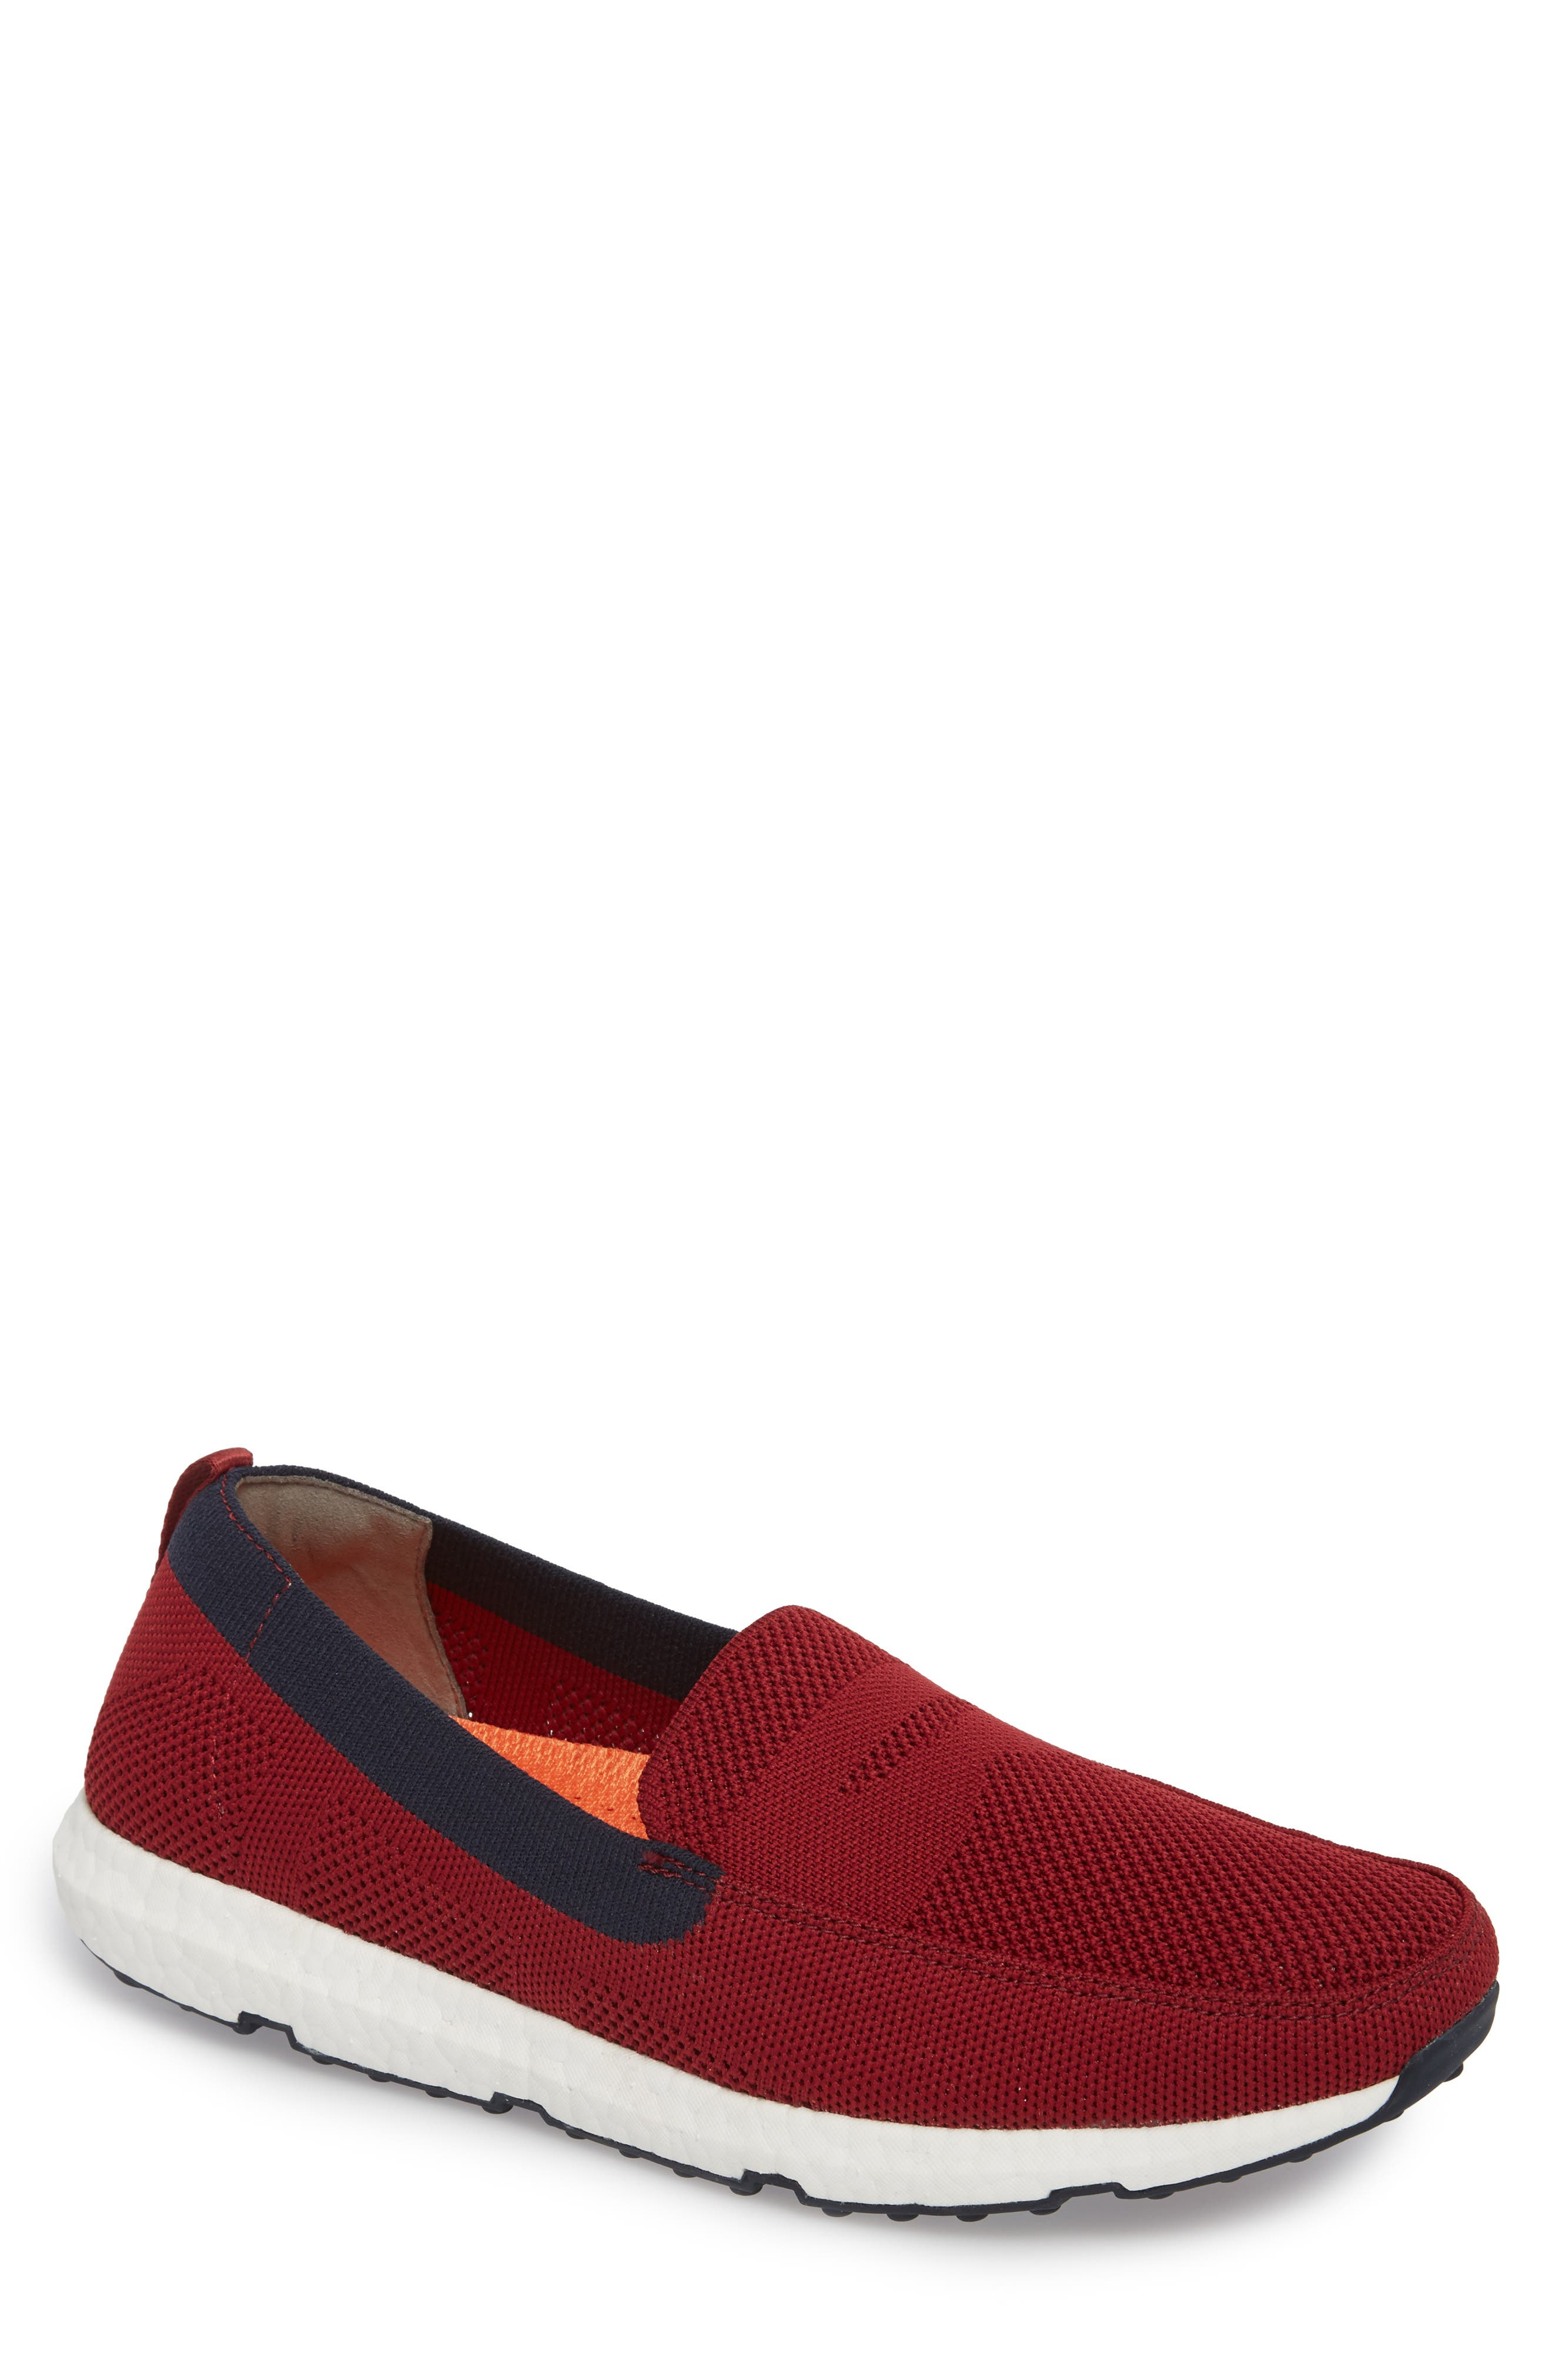 Breeze Leap Penny Loafer,                         Main,                         color, 600